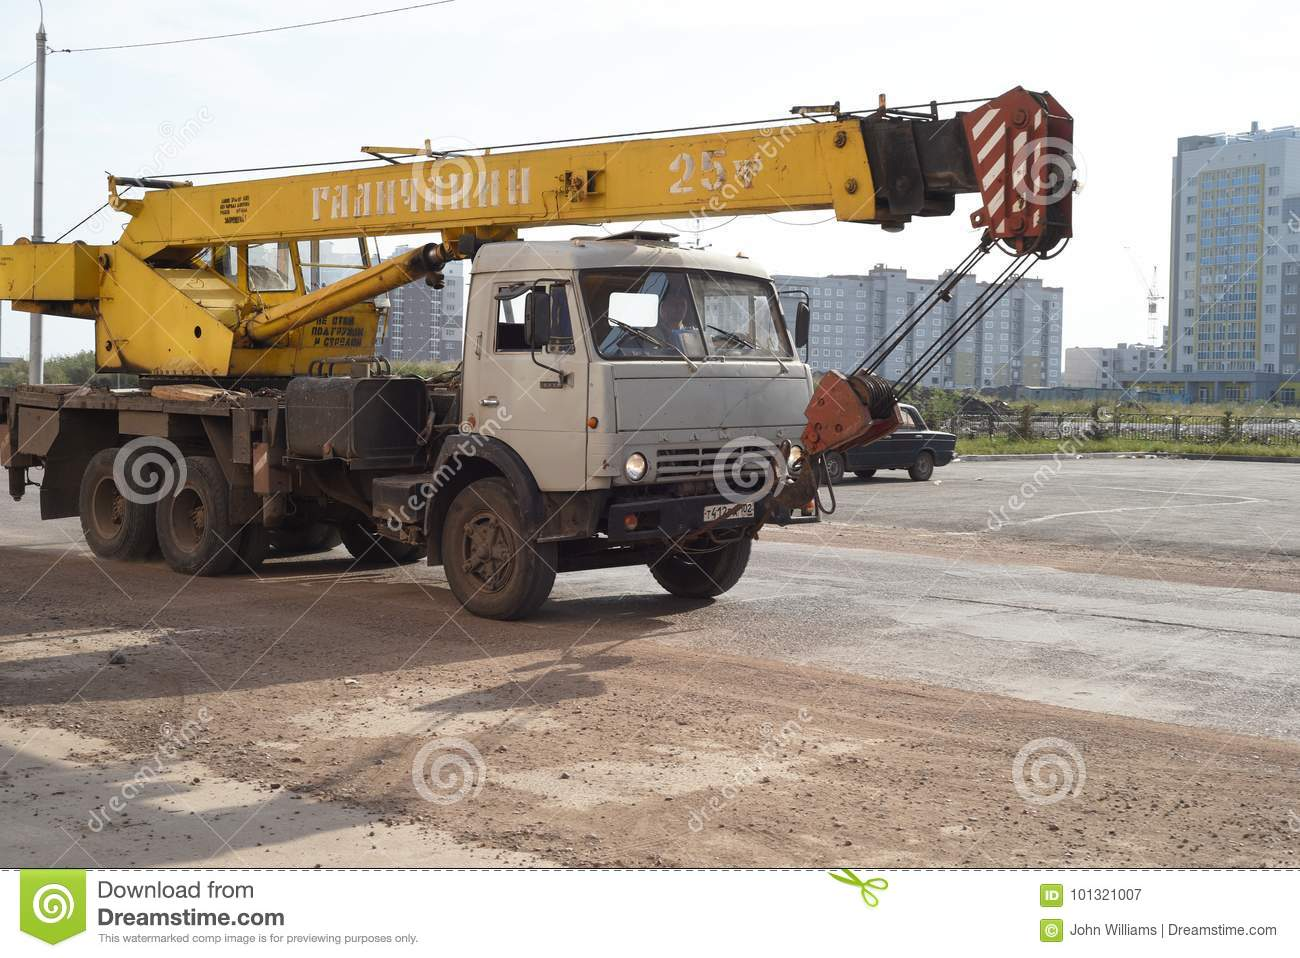 How to collect KAMAZ 49